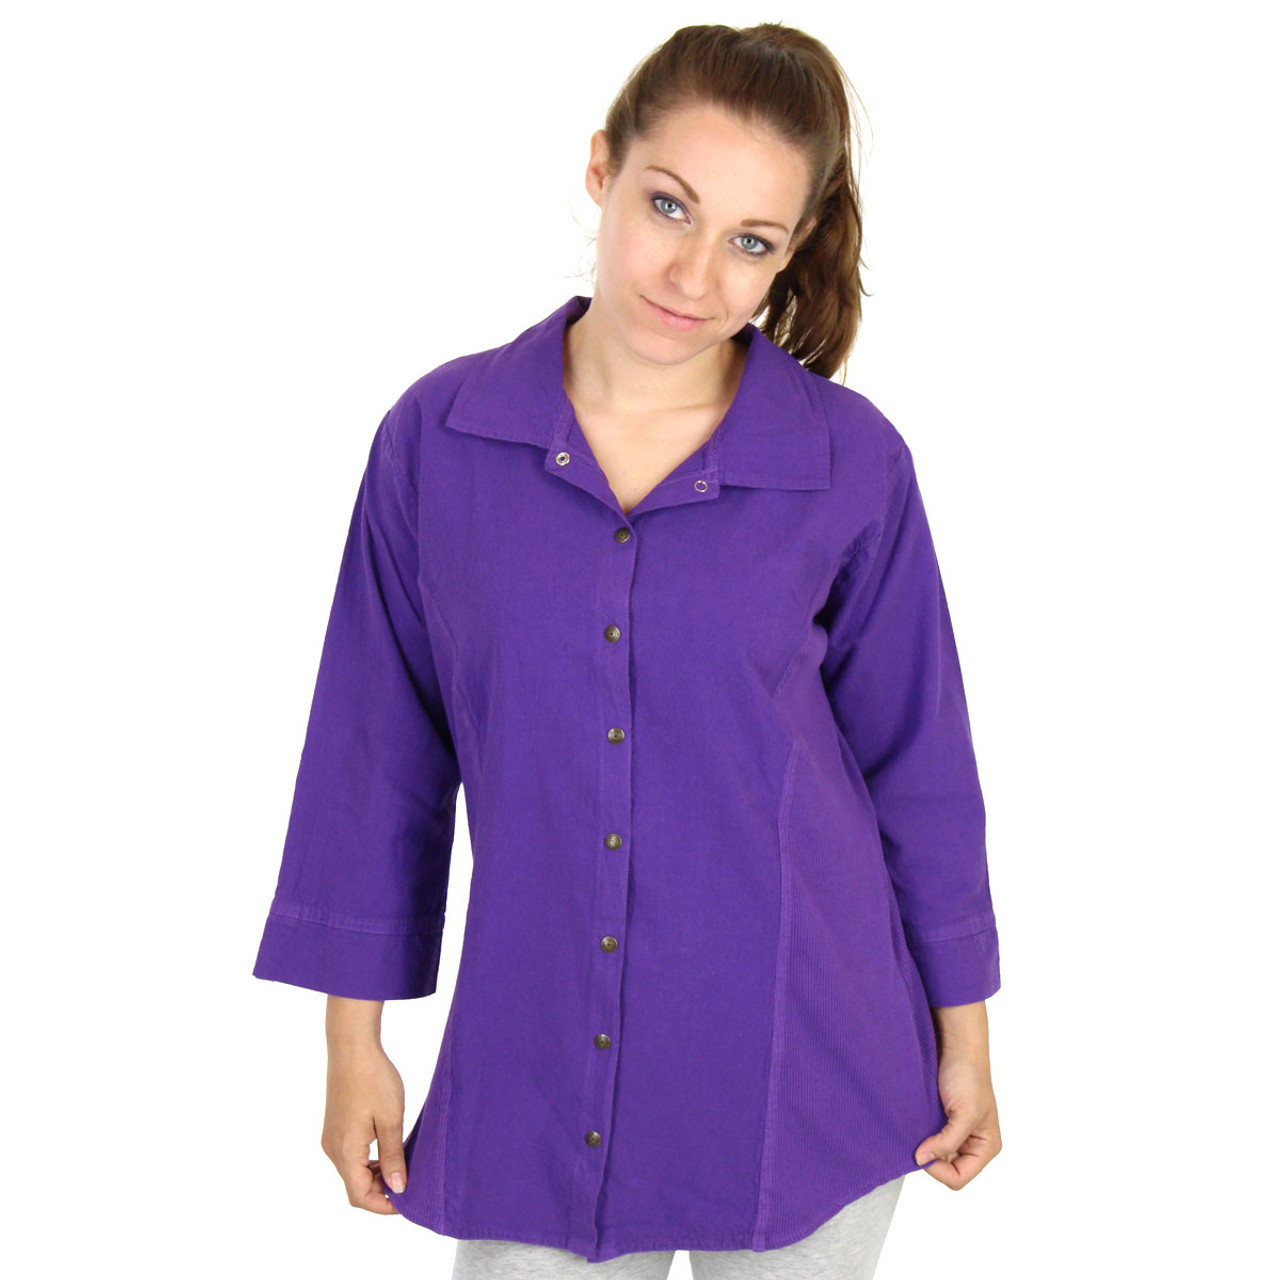 ede997fcc HoneyKomb Corded 3 Qtr Sleeve Tailored Blouse Top Shirt / Ezze Wear / Made  in Canada